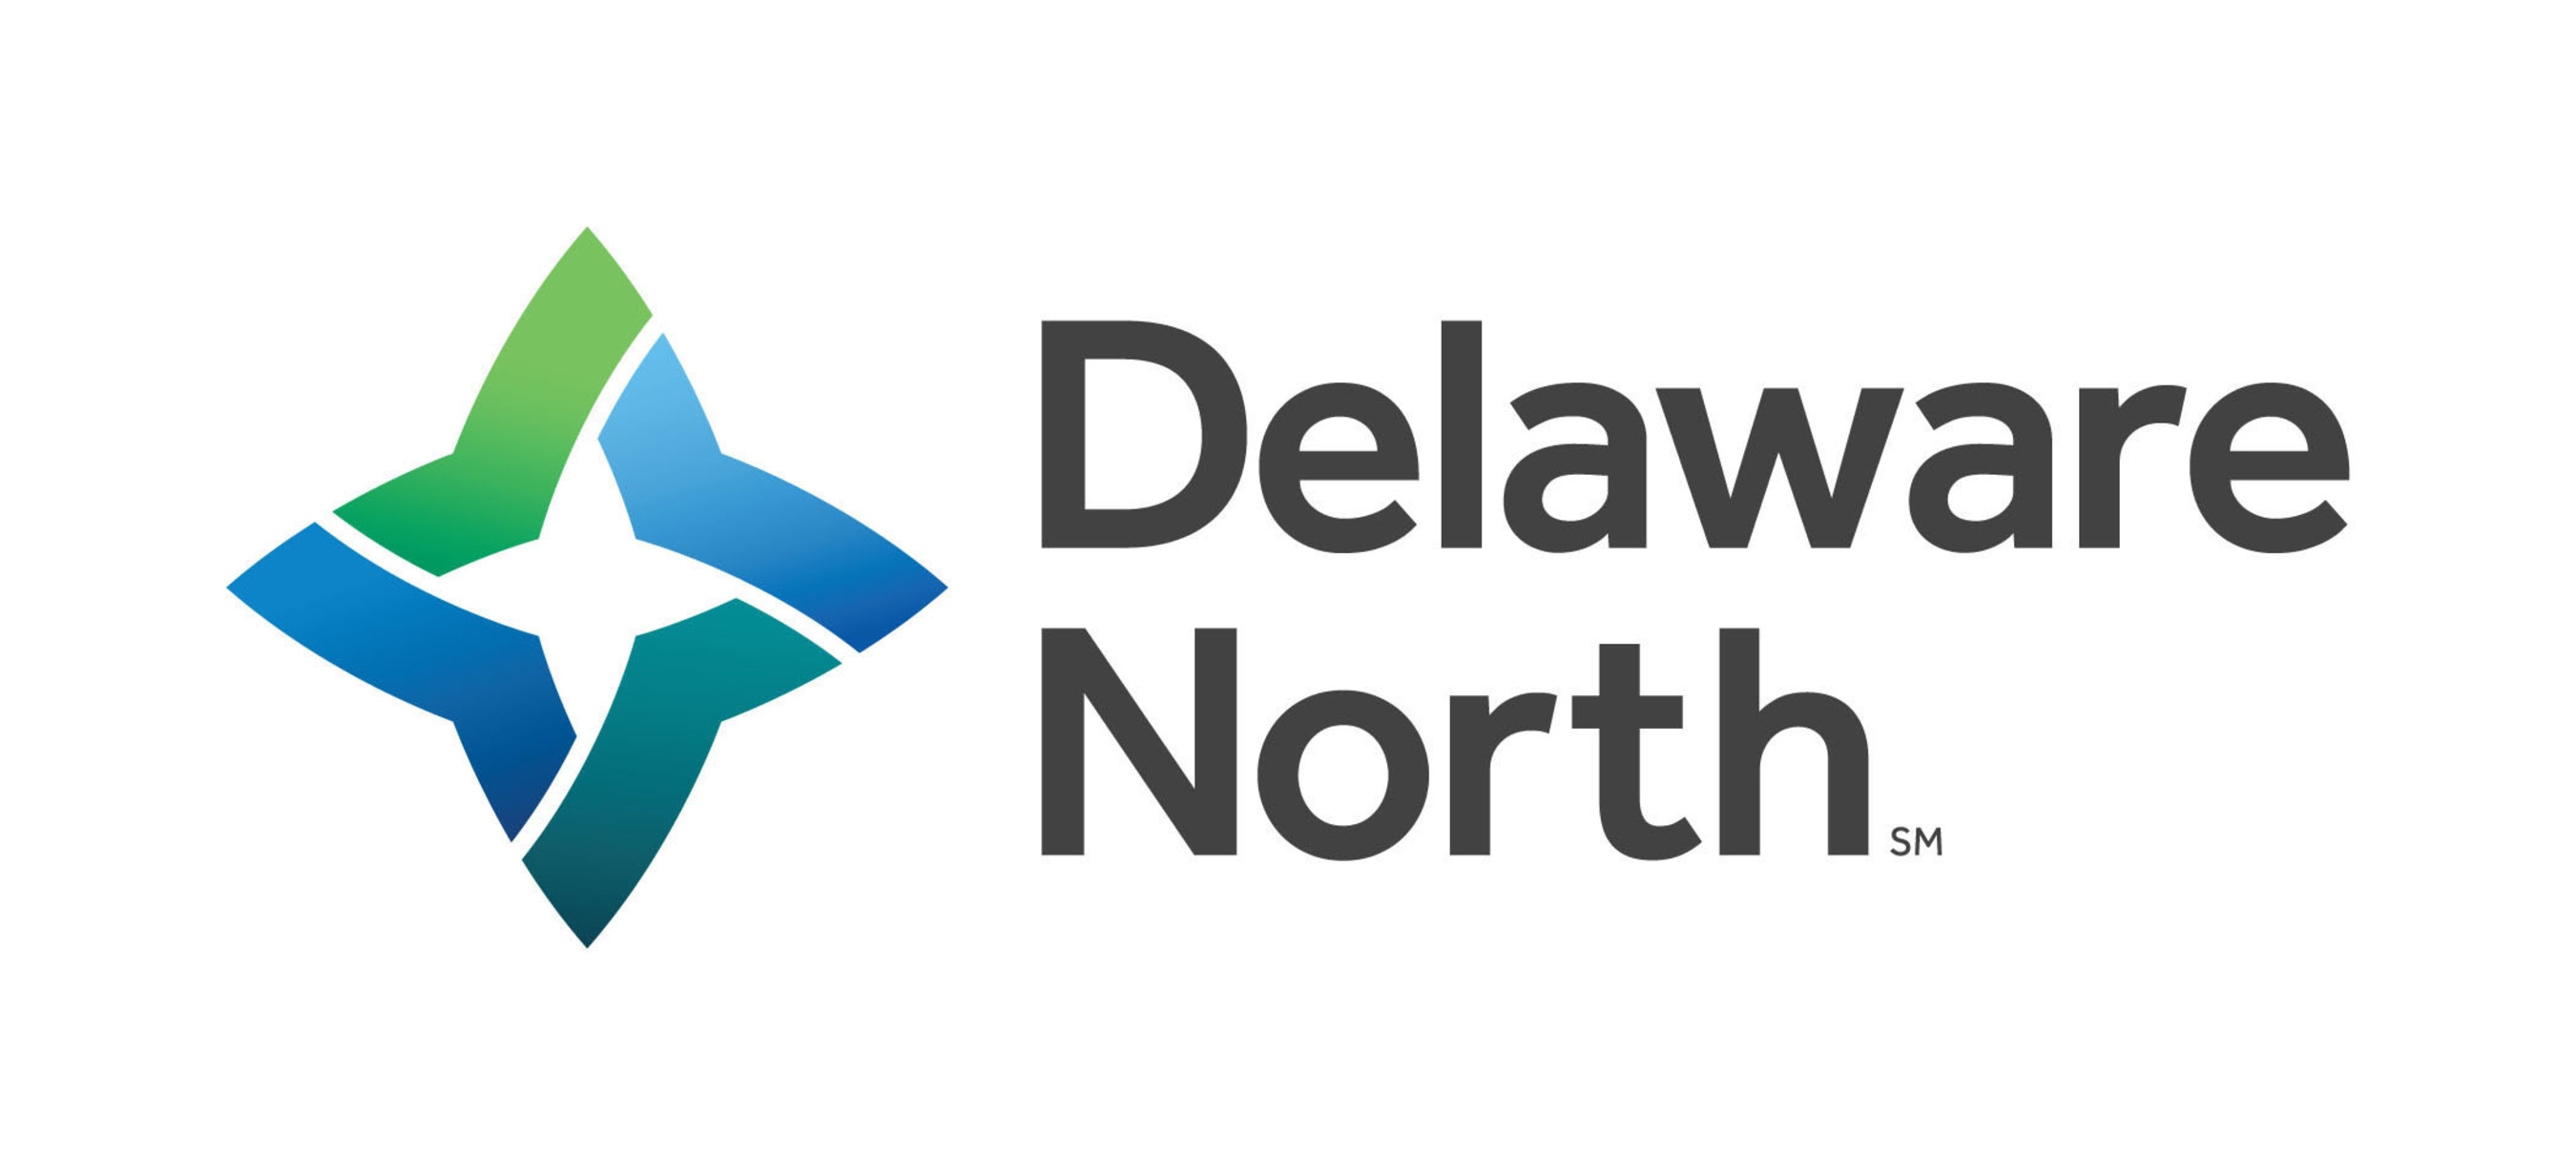 Delaware North, founded and owned by the Jacobs family for 100 years, is a global leader in hospitality and food service with operations in the sports, travel hospitality, restaurants and catering, parks, resorts, gaming and specialty retail industries. Its portfolio includes high-profile locations such as sports stadiums, entertainment complexes, national parks, restaurants, airports, and top regional casinos. The company also owns award-winning destination resorts and premium restaurants...